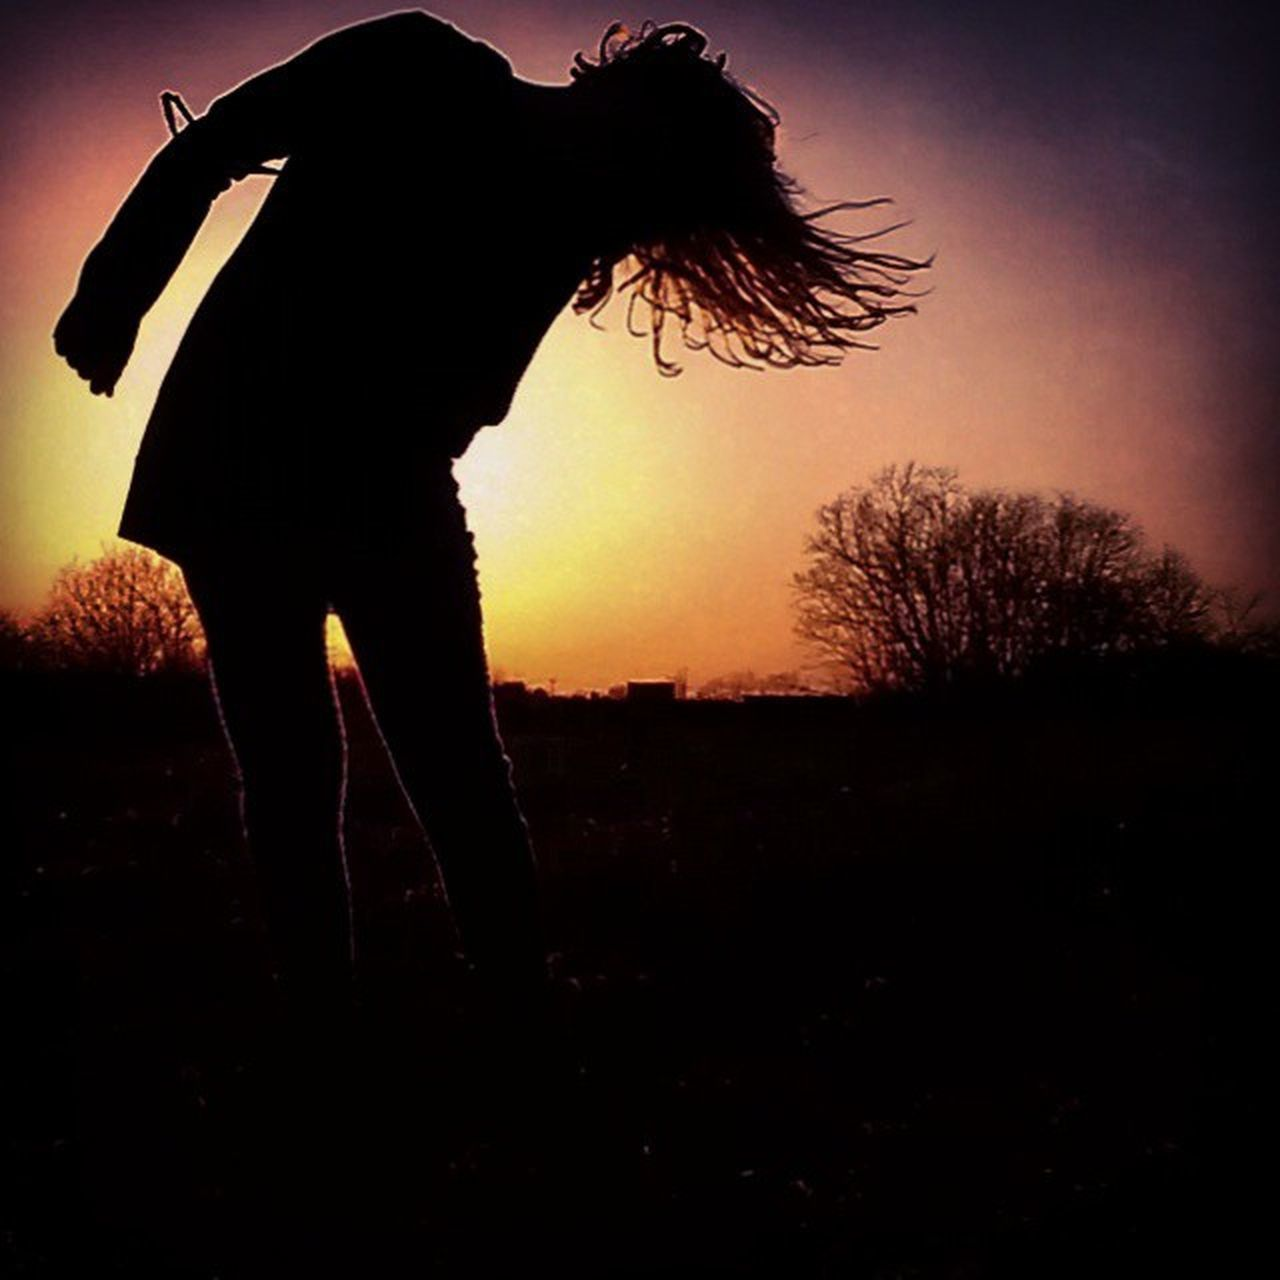 Just breathe. Life Celebrate Holiday Fieldtrip Fieldofdreams Artist Photography Artistsoninstagram Springhassprung Sunset Highcontrast Backlit Sunset Silhouette Fieldofdreamz Hairwhip Hairflip